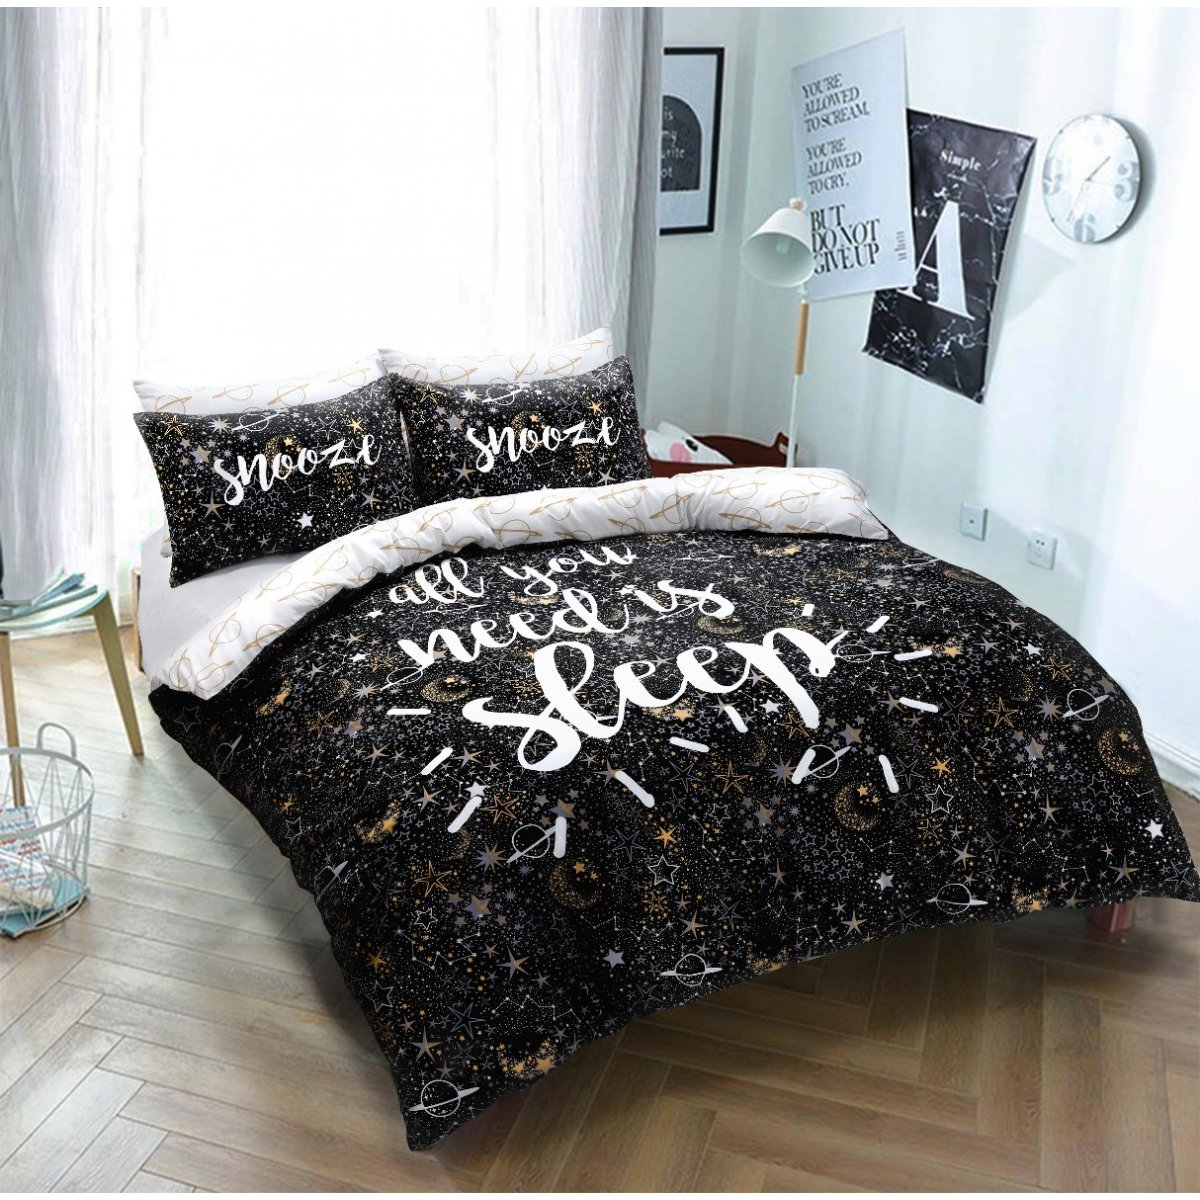 Sleep Slogan Bedding - Reversible Duvet Cover and Pillowcase Set